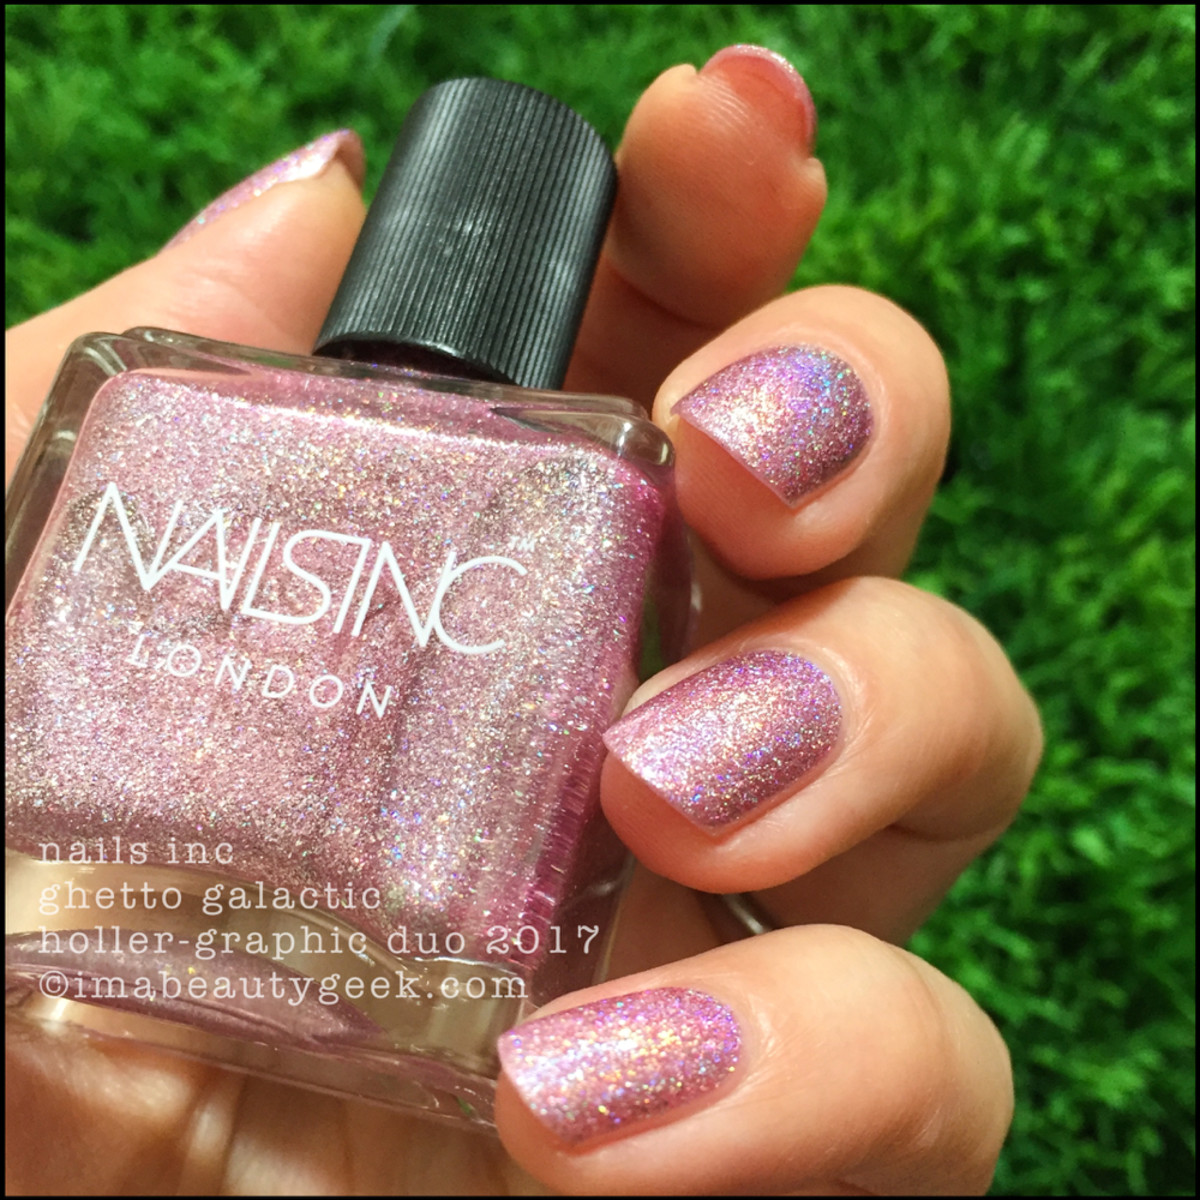 Nails Inc Ghetto Galactic Holler-Graphic Duo Swatches Review 2017 3